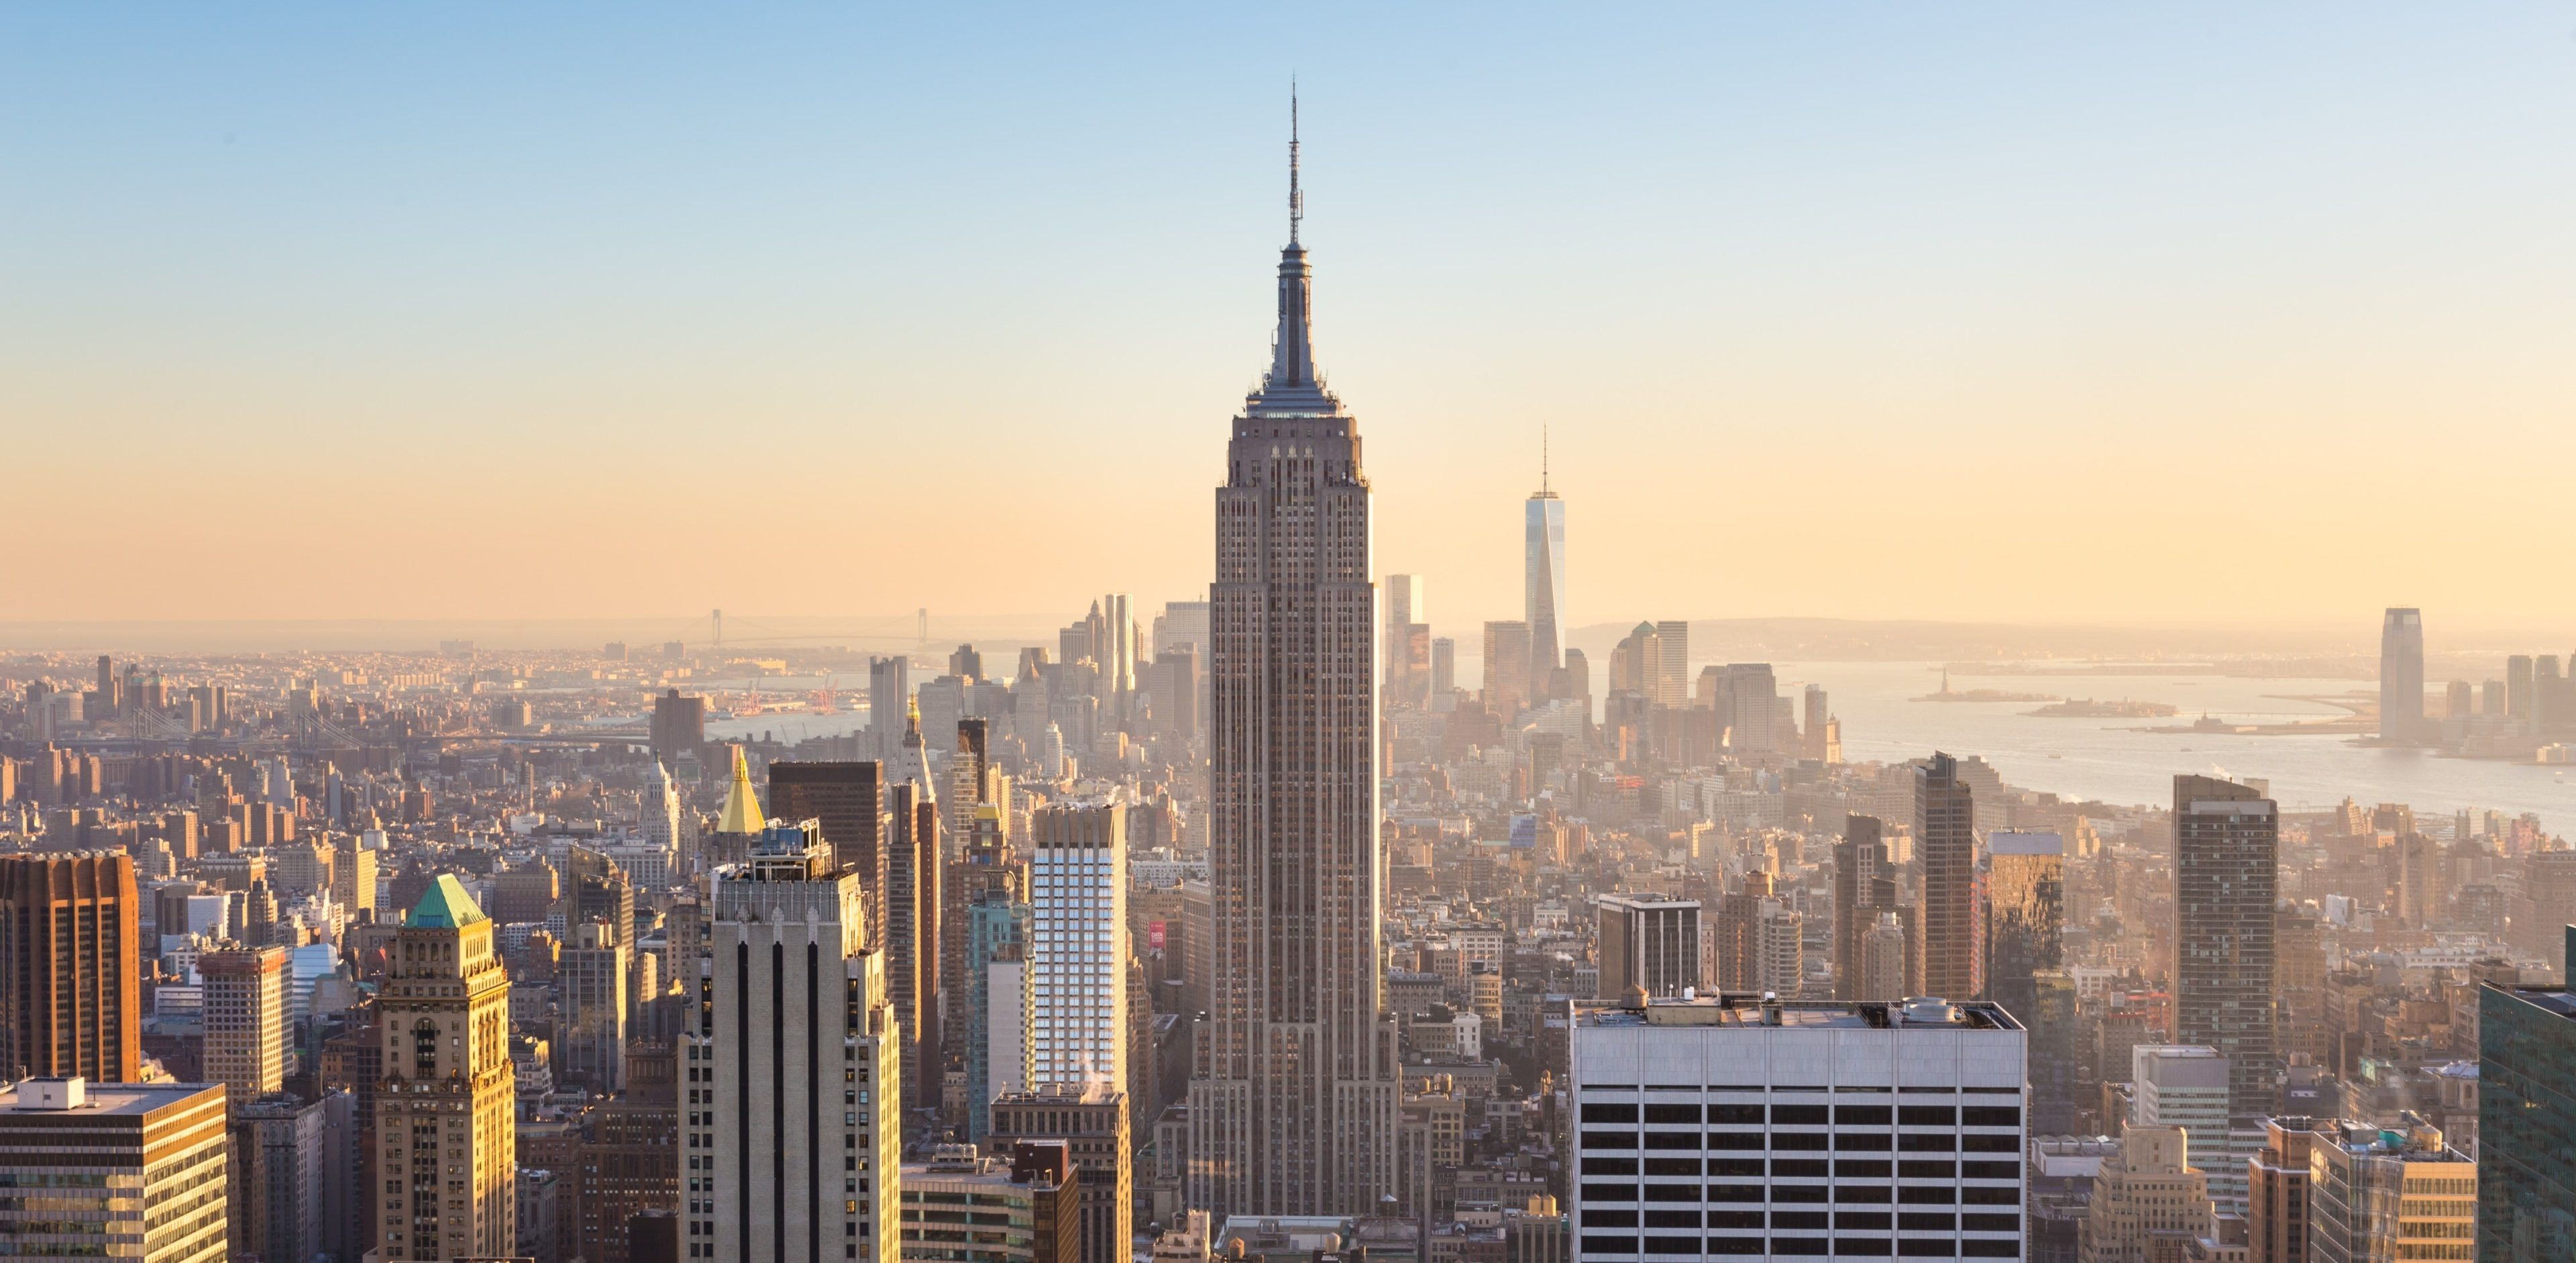 3840x1882 New York 4k Wallpaper Download Free For Pc Hd New York City Manhattan Empire State Building Empire State